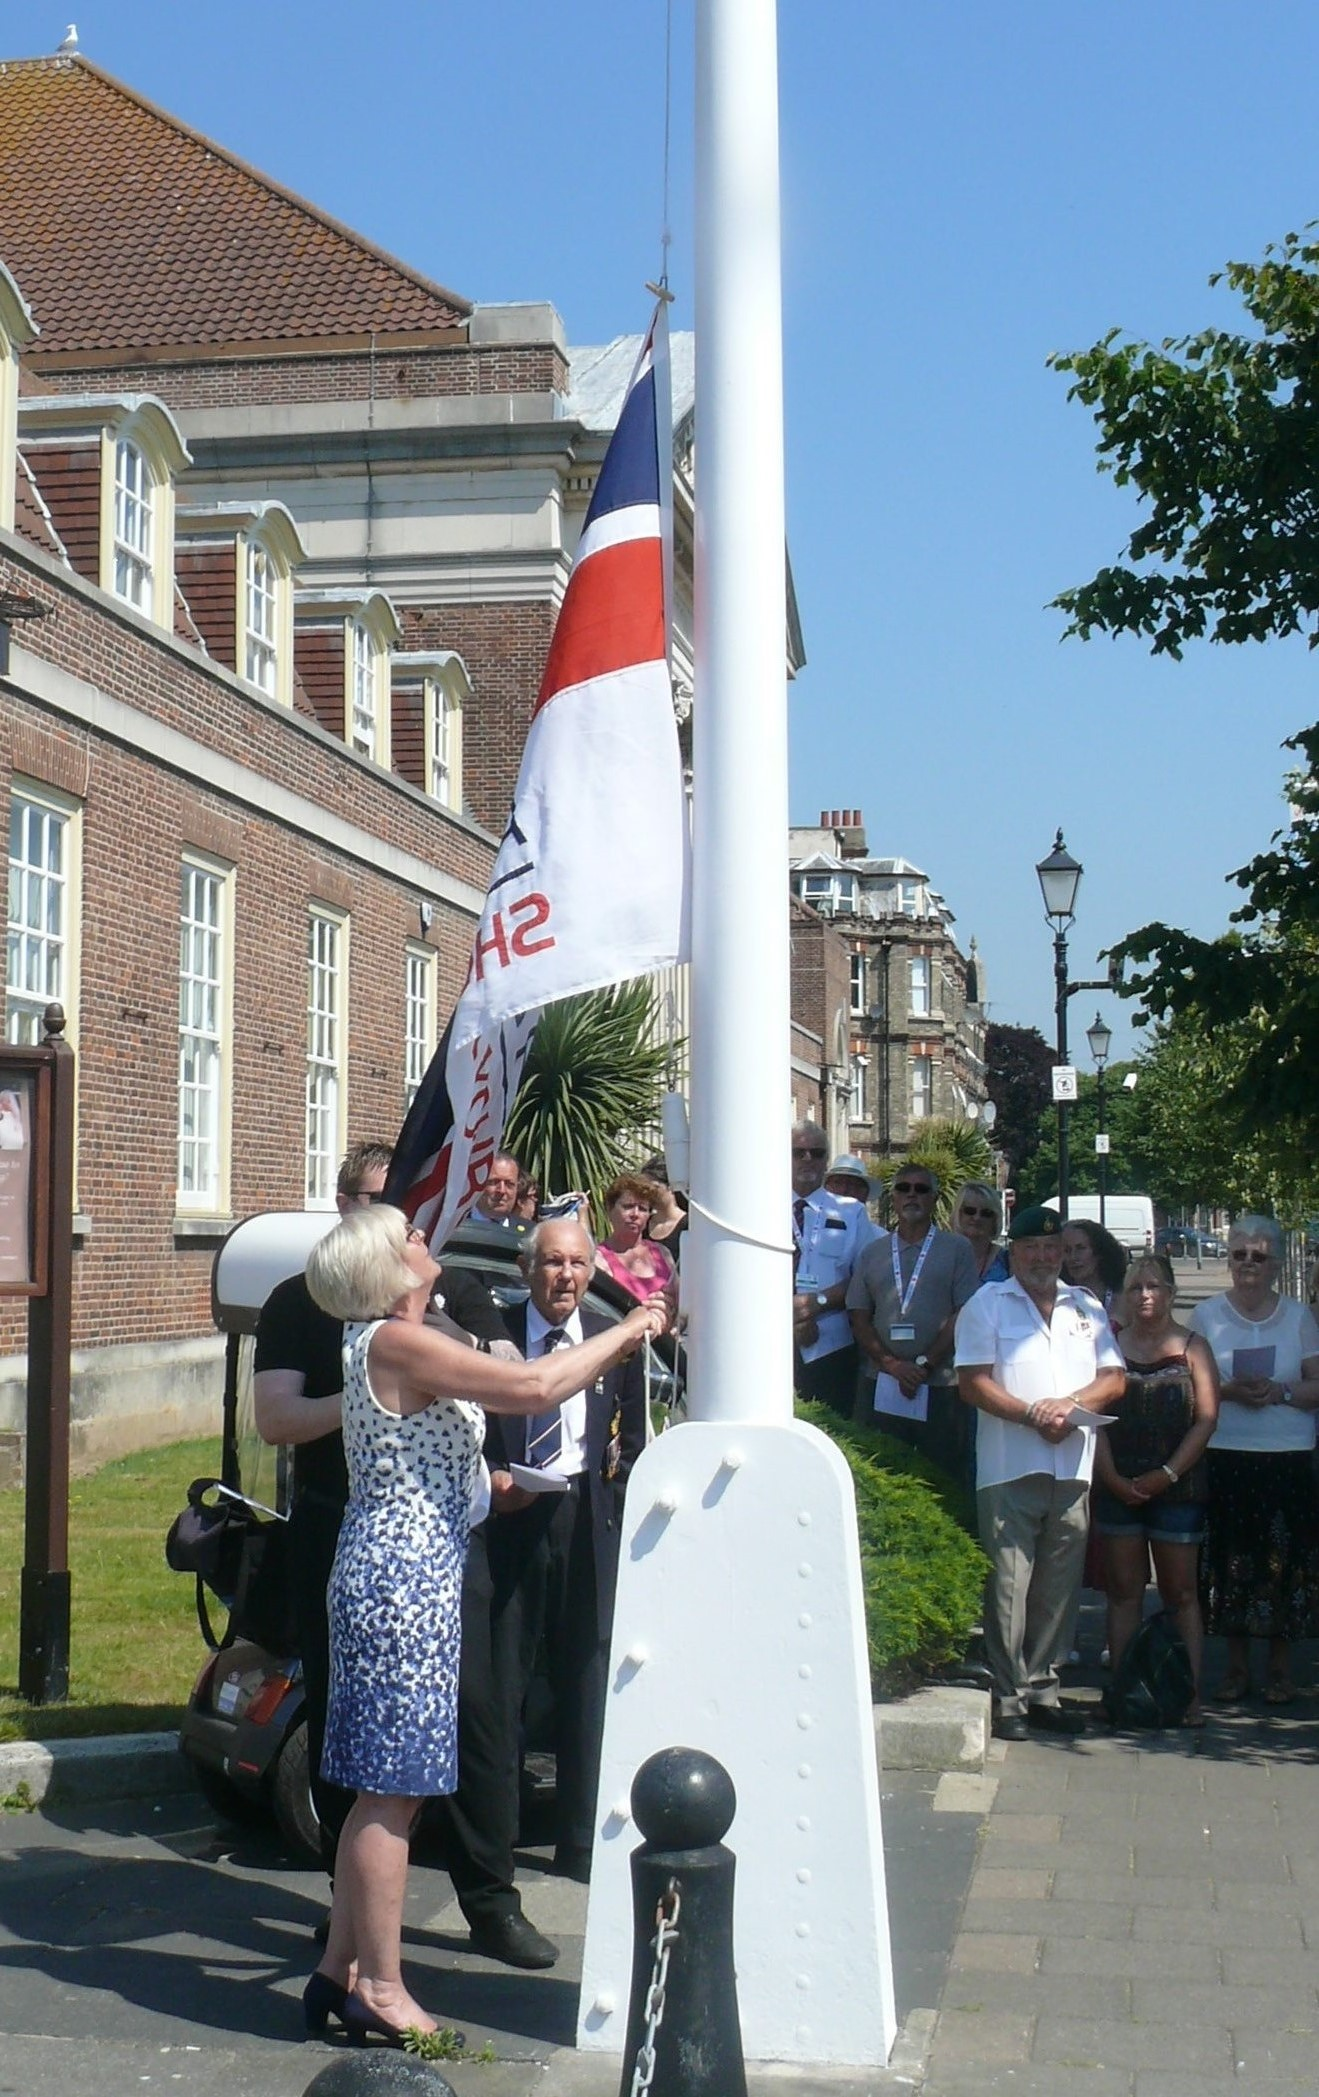 The Armed Forces Day flag being raised outside Clacton Town Hall last year